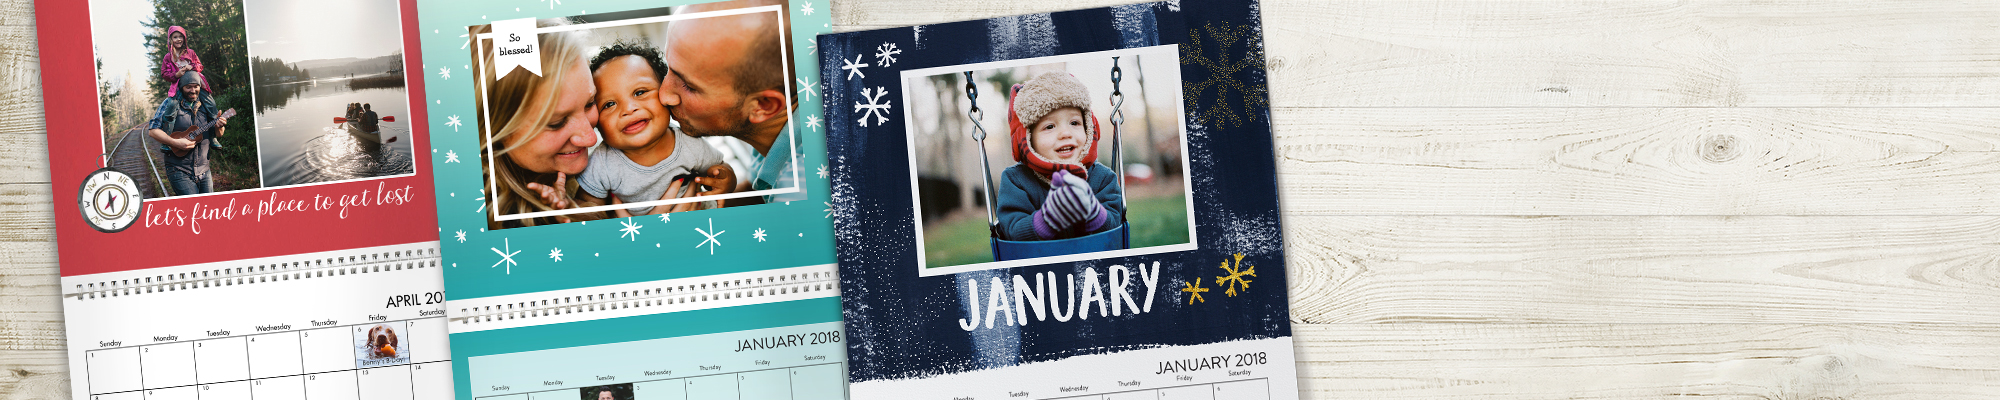 2018 Photo Calendars  'Tis the season to create personalized calendars for 2018.